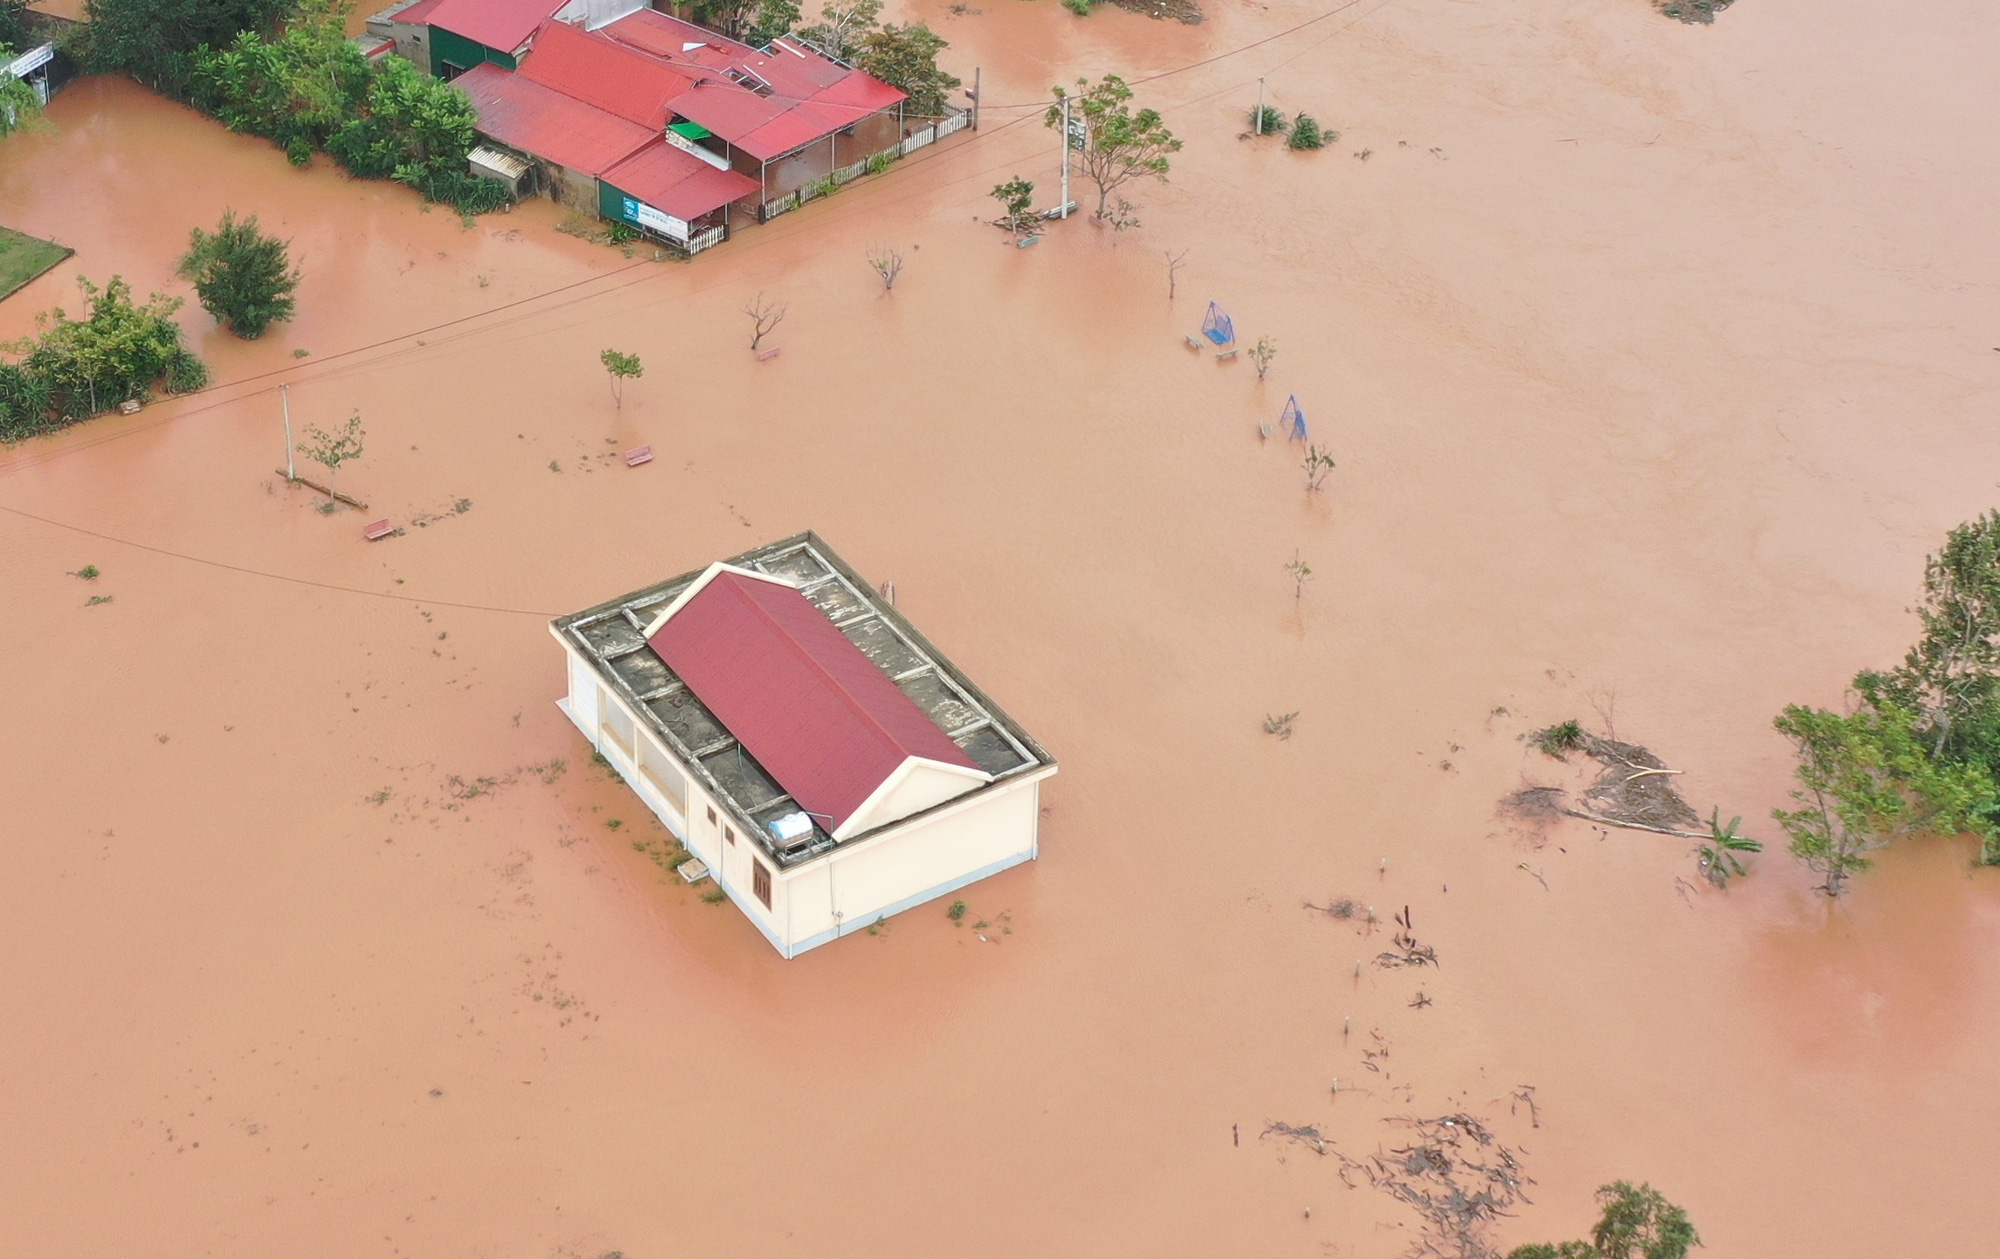 A village is flooded in Quang Tri Province, Vietnam, October 10, 2020. Photo: Truong Trung / Tuoi Tre